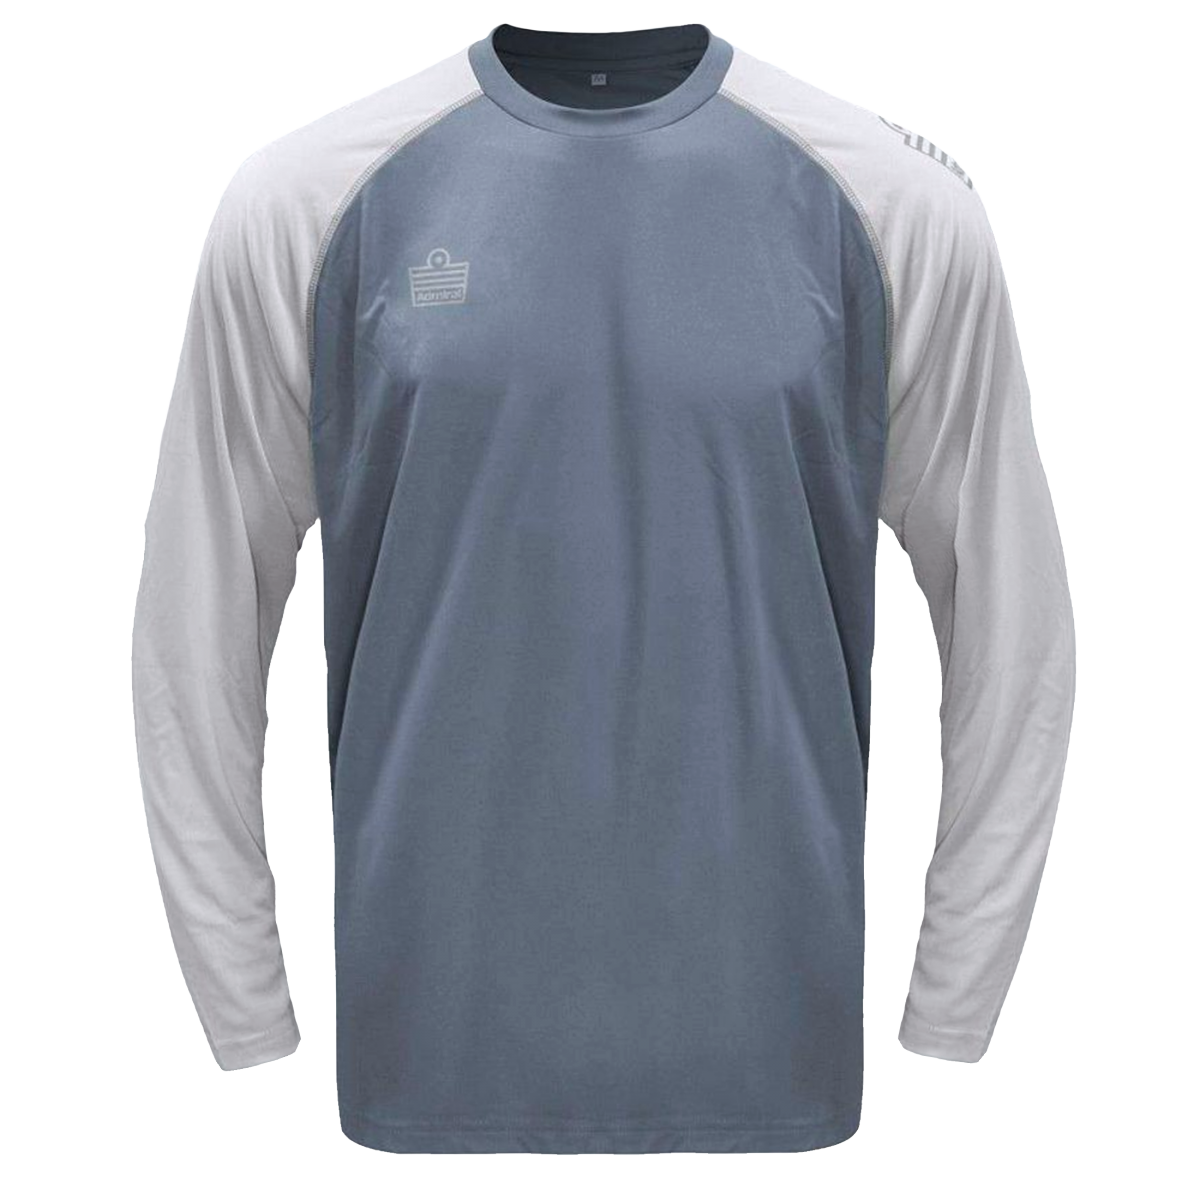 Admiral Impact Performance Top Long Sleeve-Gray -2XL